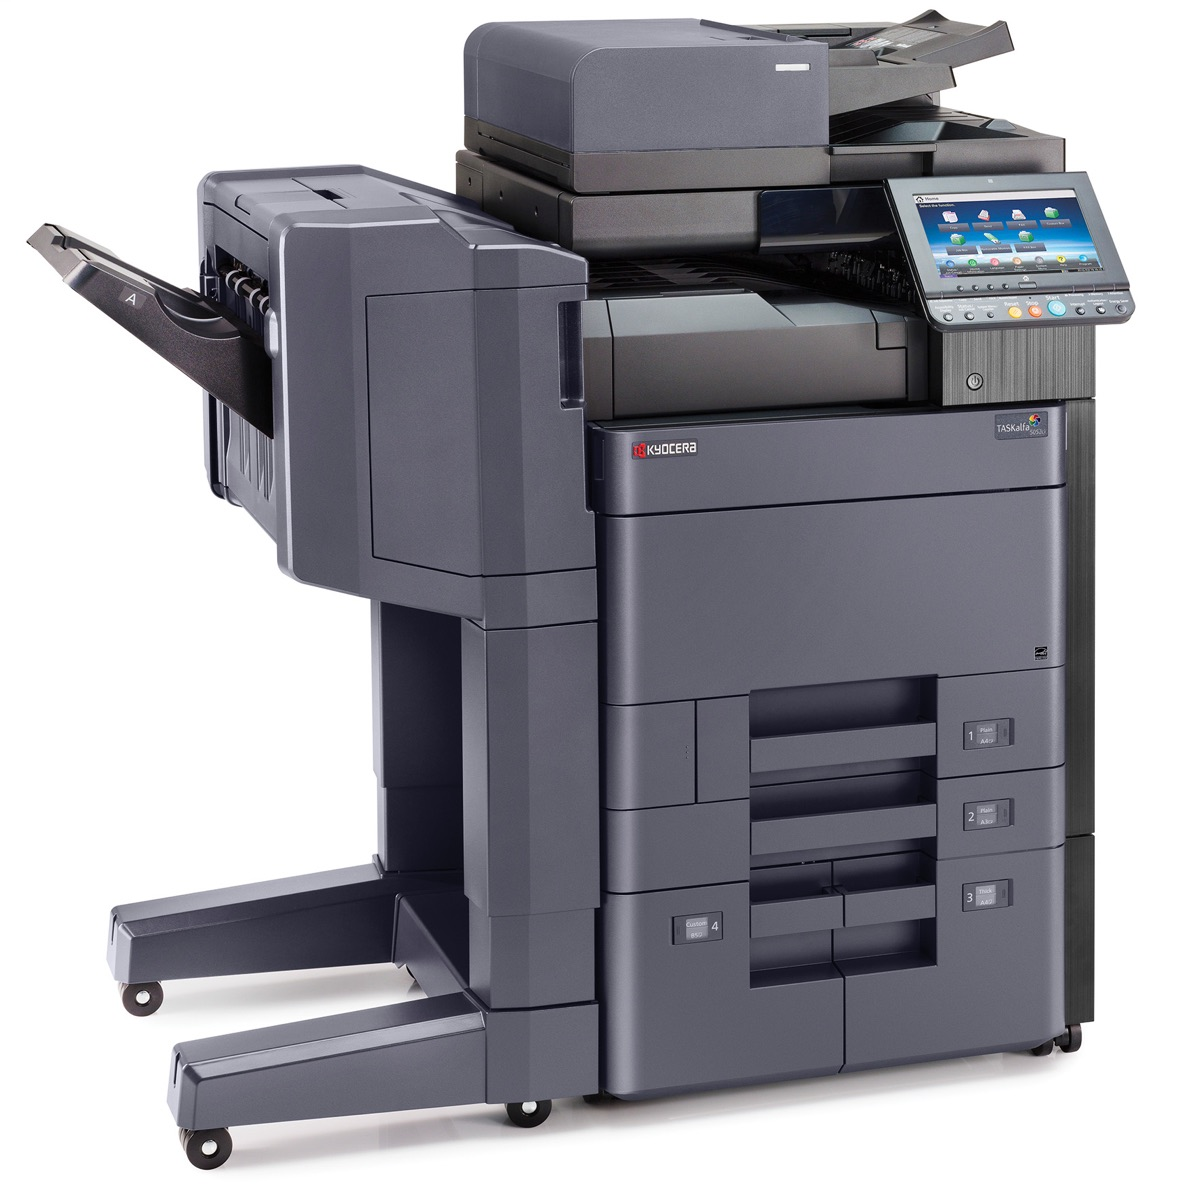 Kyocera Copiers:  The Kyocera TASKalfa 5052ci Copier